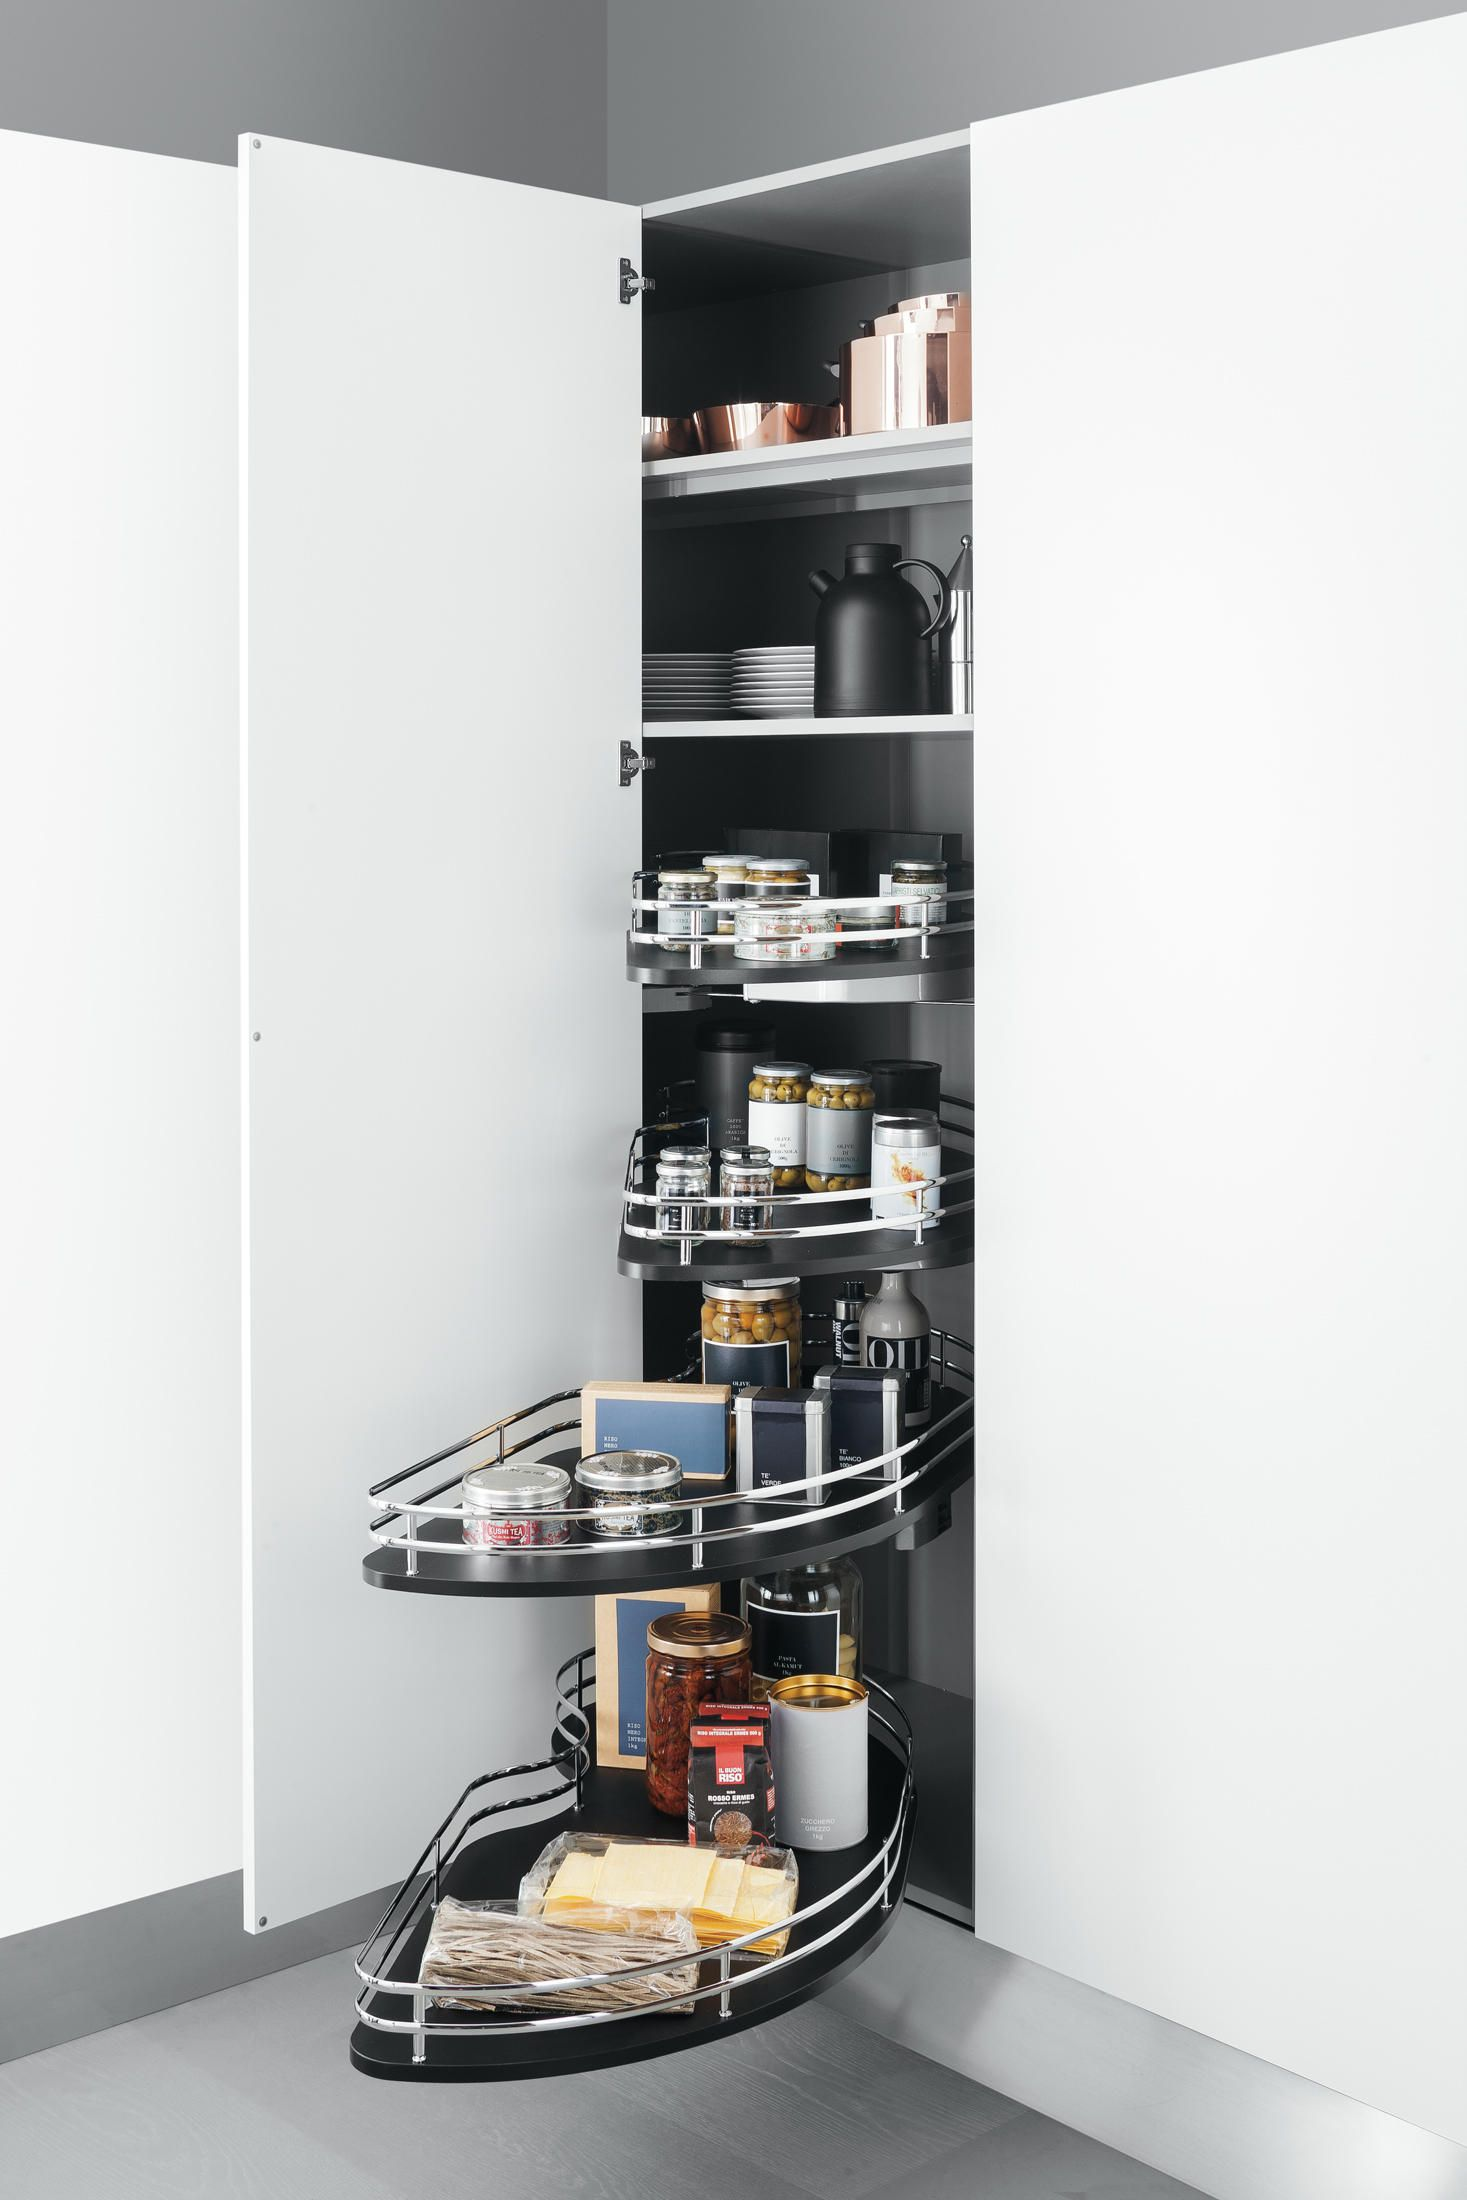 Tall Units Corner Base Unit With Shaped Baskets Designer Kitchen Organization From Arcline Tall Kitchen Cabinets Upper Kitchen Cabinets Ikea Kitchen Design